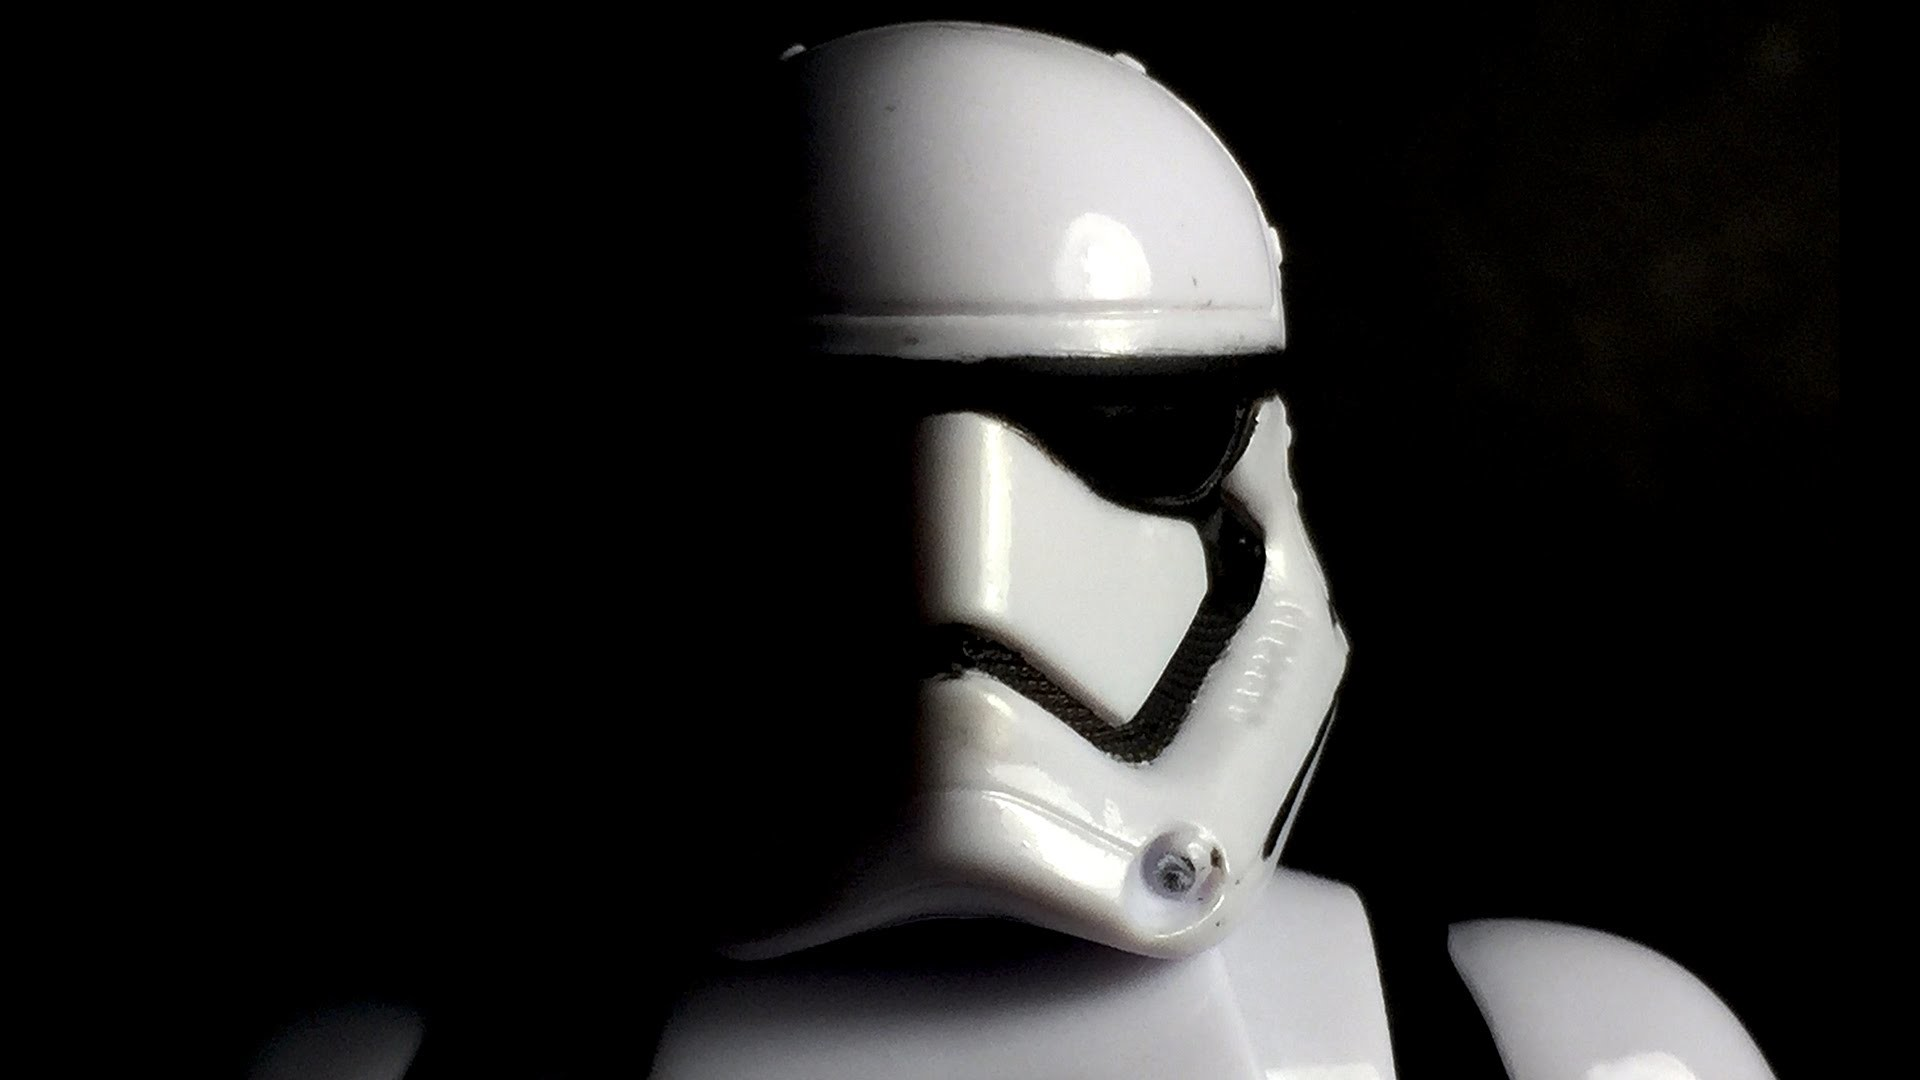 Star Wars 7 Poster features The First Order | Collider